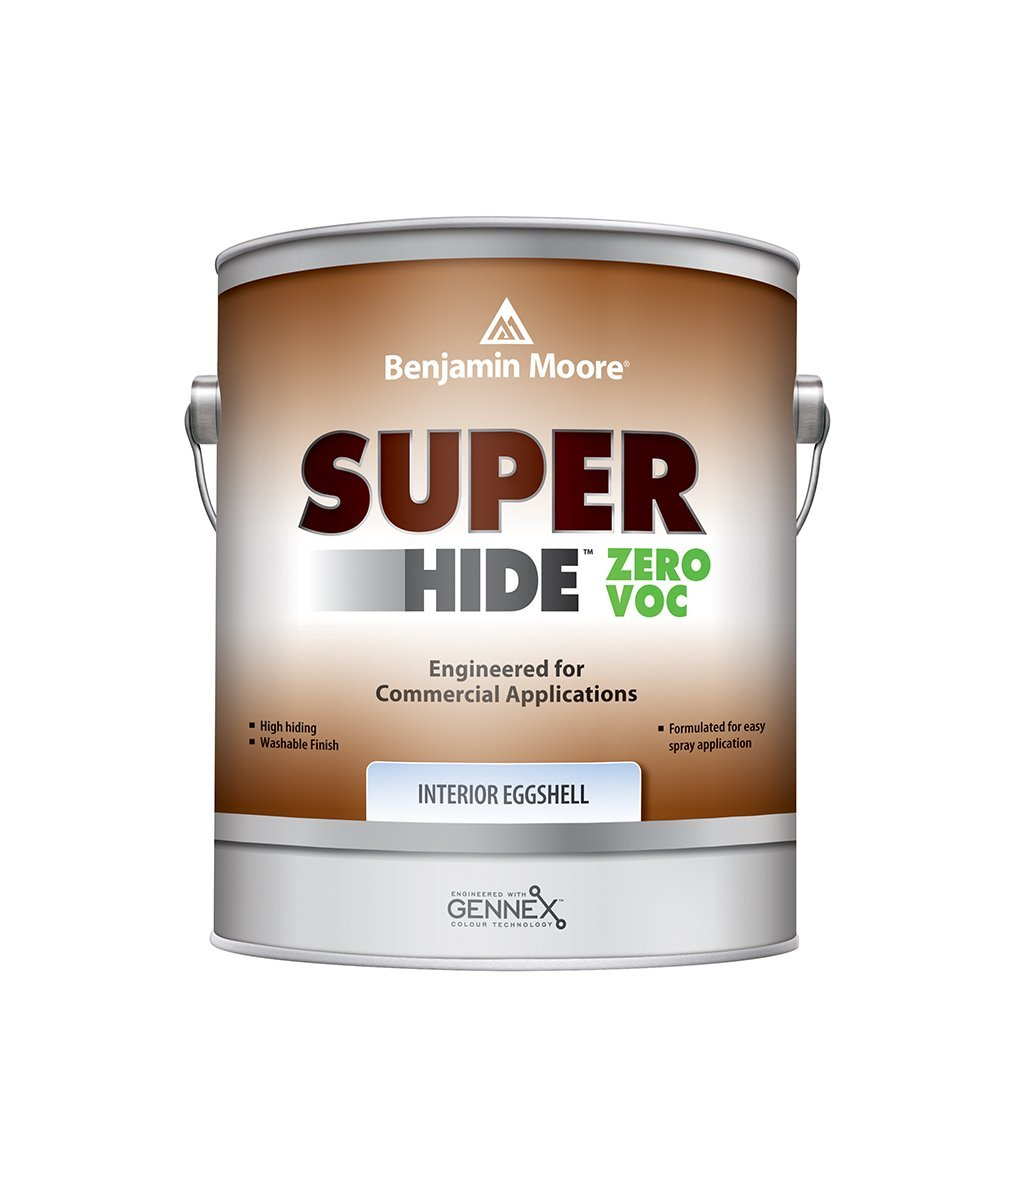 Benjamin Moore Super Hide Zero Eggshell Interior Paint, available at Mallory Paint Stores.